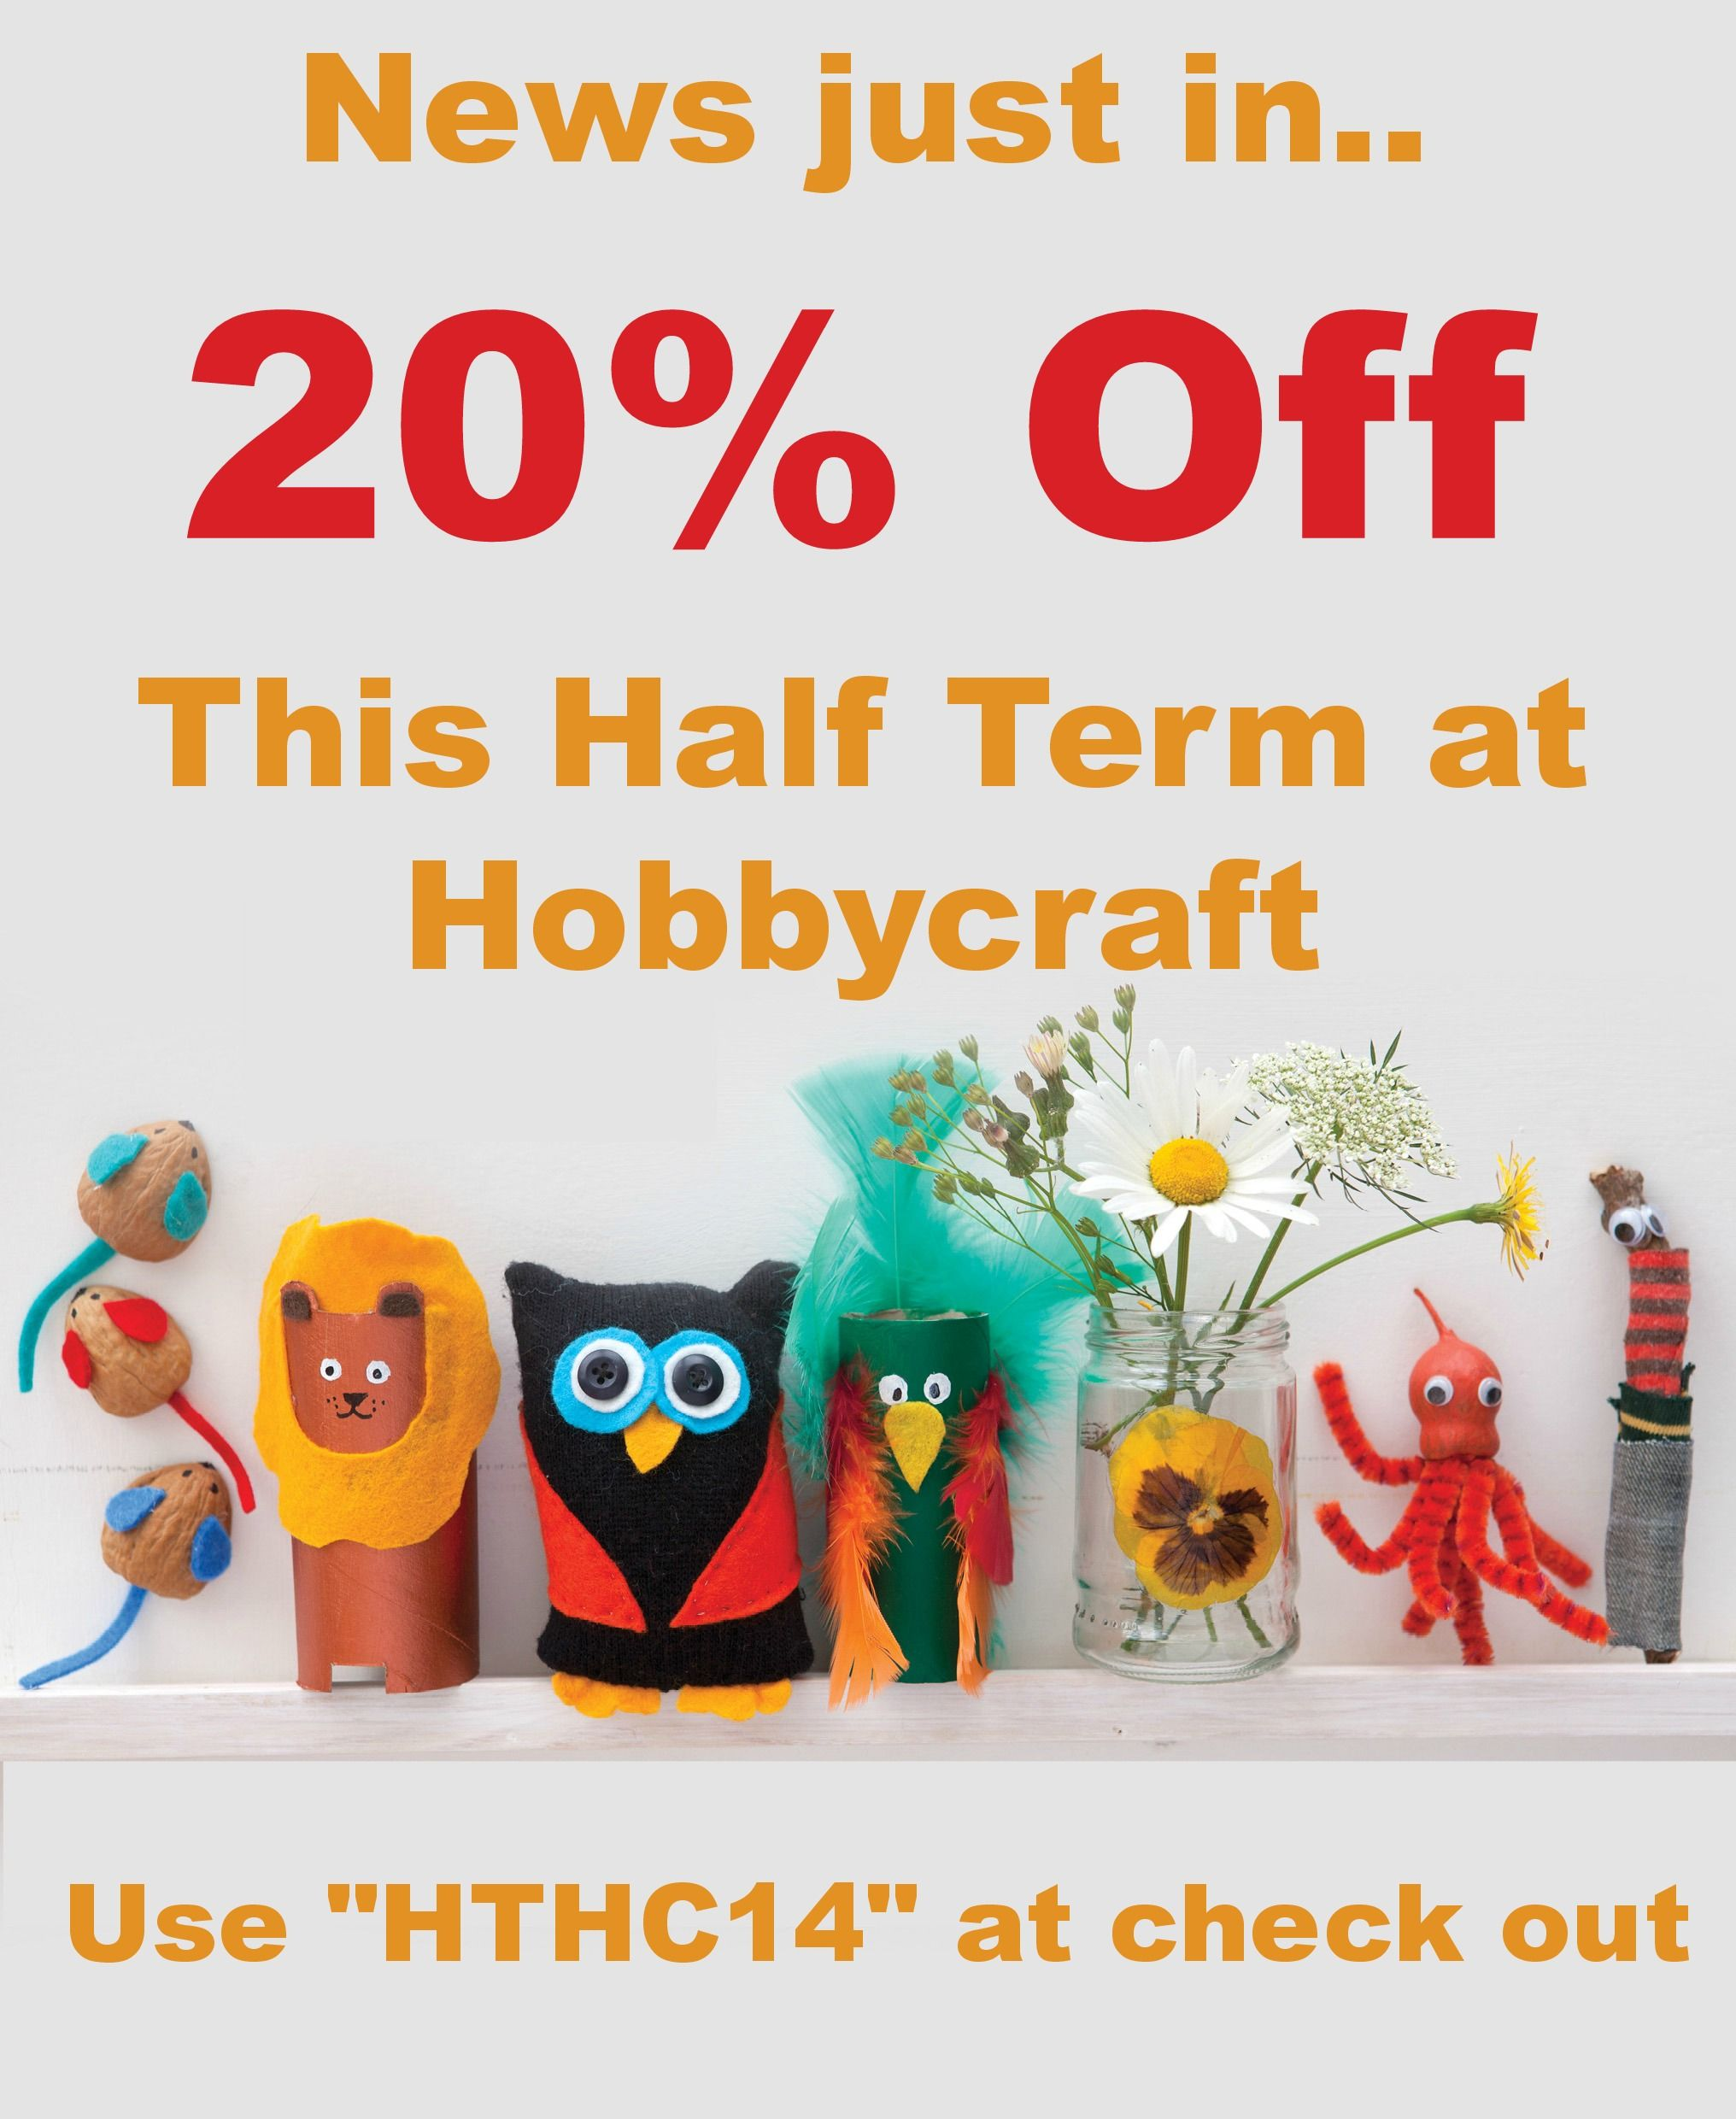 Ooh 20 Off At Hobbycraft Just In Time For Half Term Love It Use Hthc14 At Check Out Craft Supplies Online Hobbies And Crafts Crafts For Kids